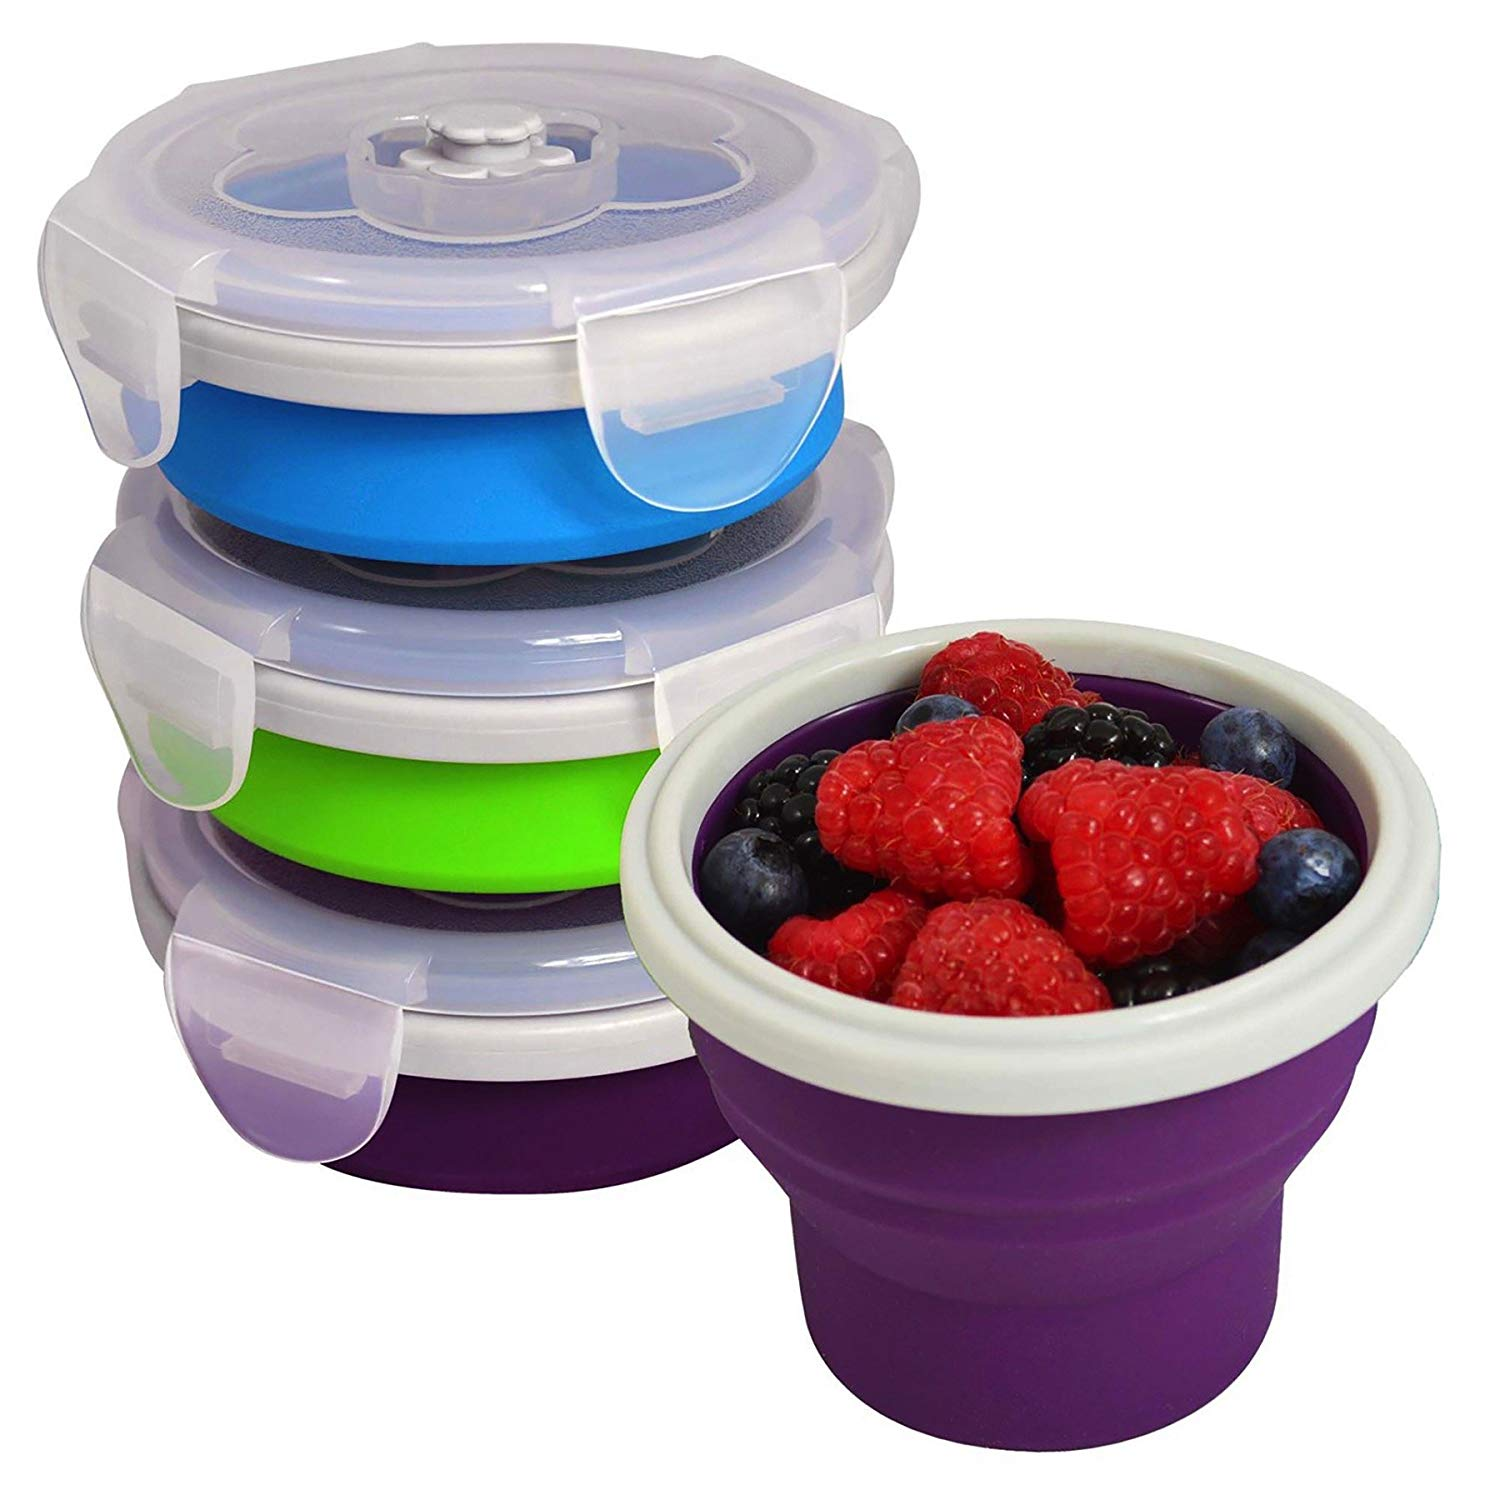 EcoVessel Snacker Collapsible Silicone Snack Box and Food Container - 8 Ounces, $19 @amazon.com